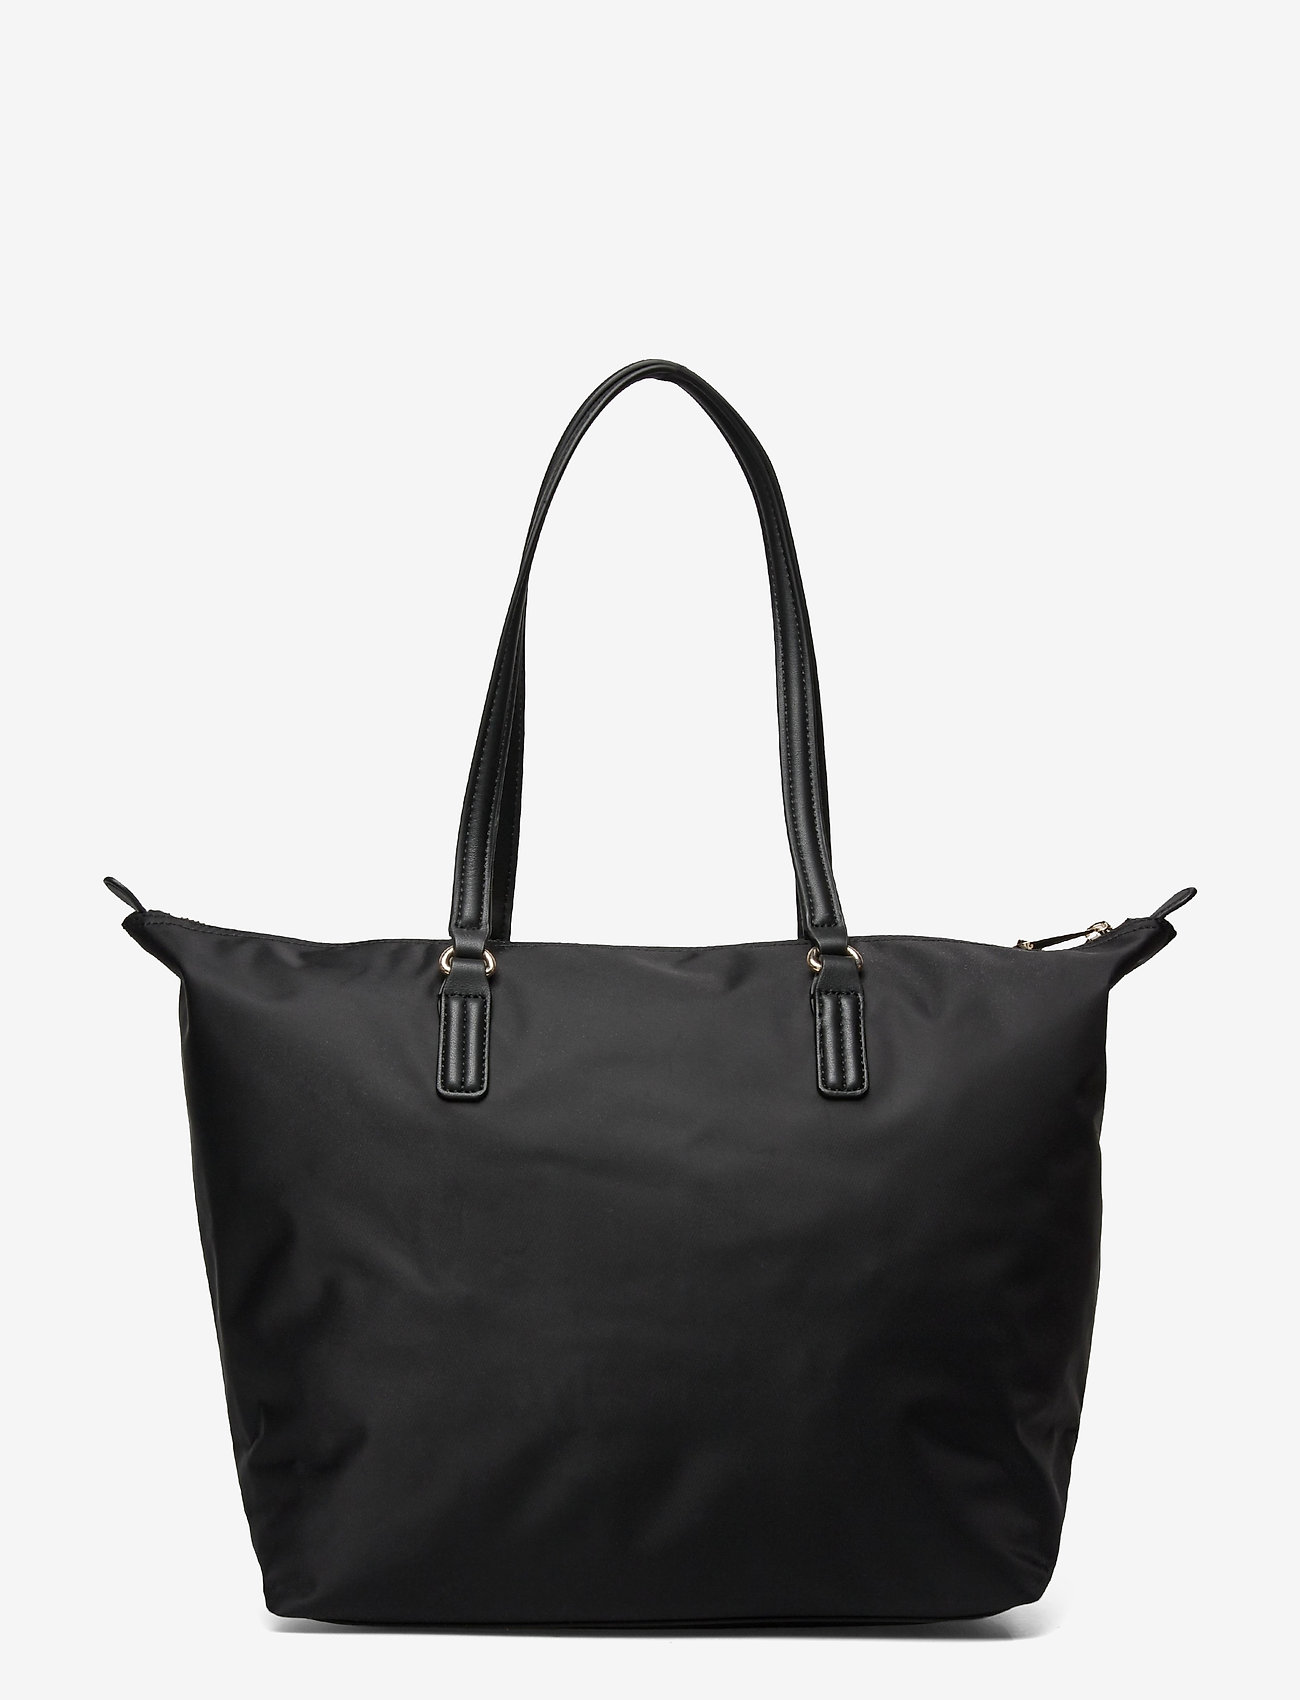 Tommy Hilfiger - POPPY TOTE - totes - black - 1